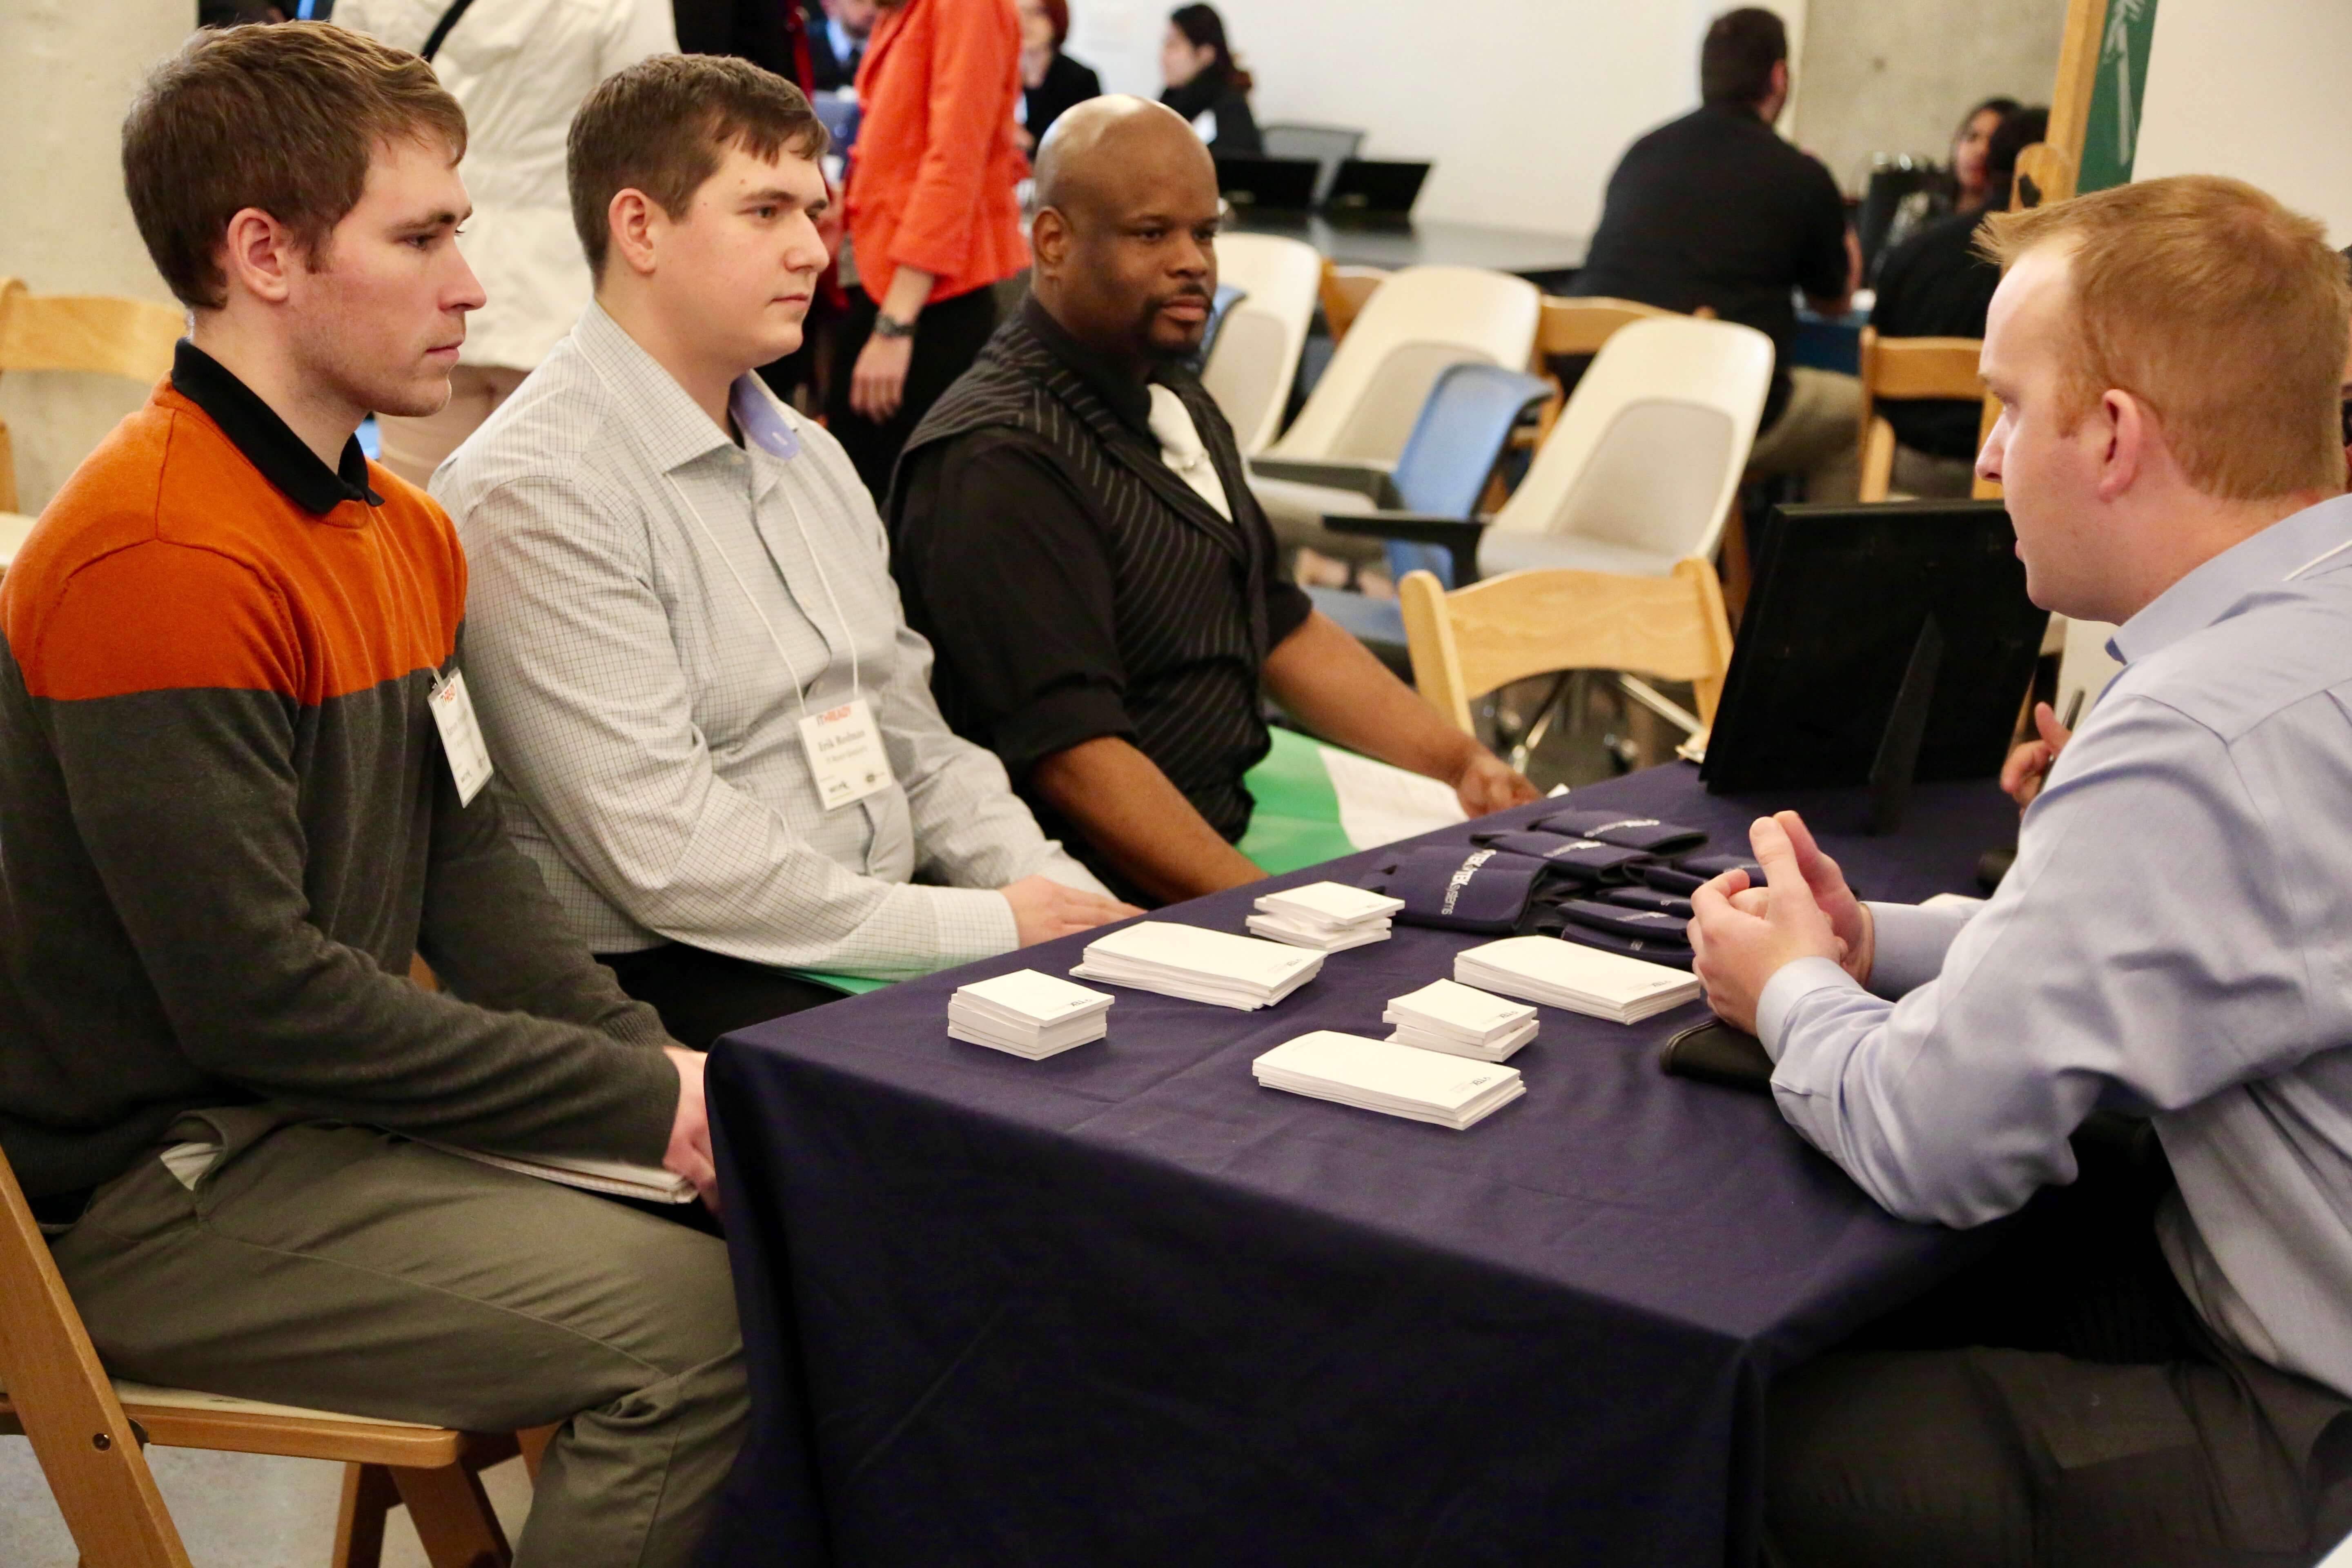 TEKsystems talks to graduates during a career fair